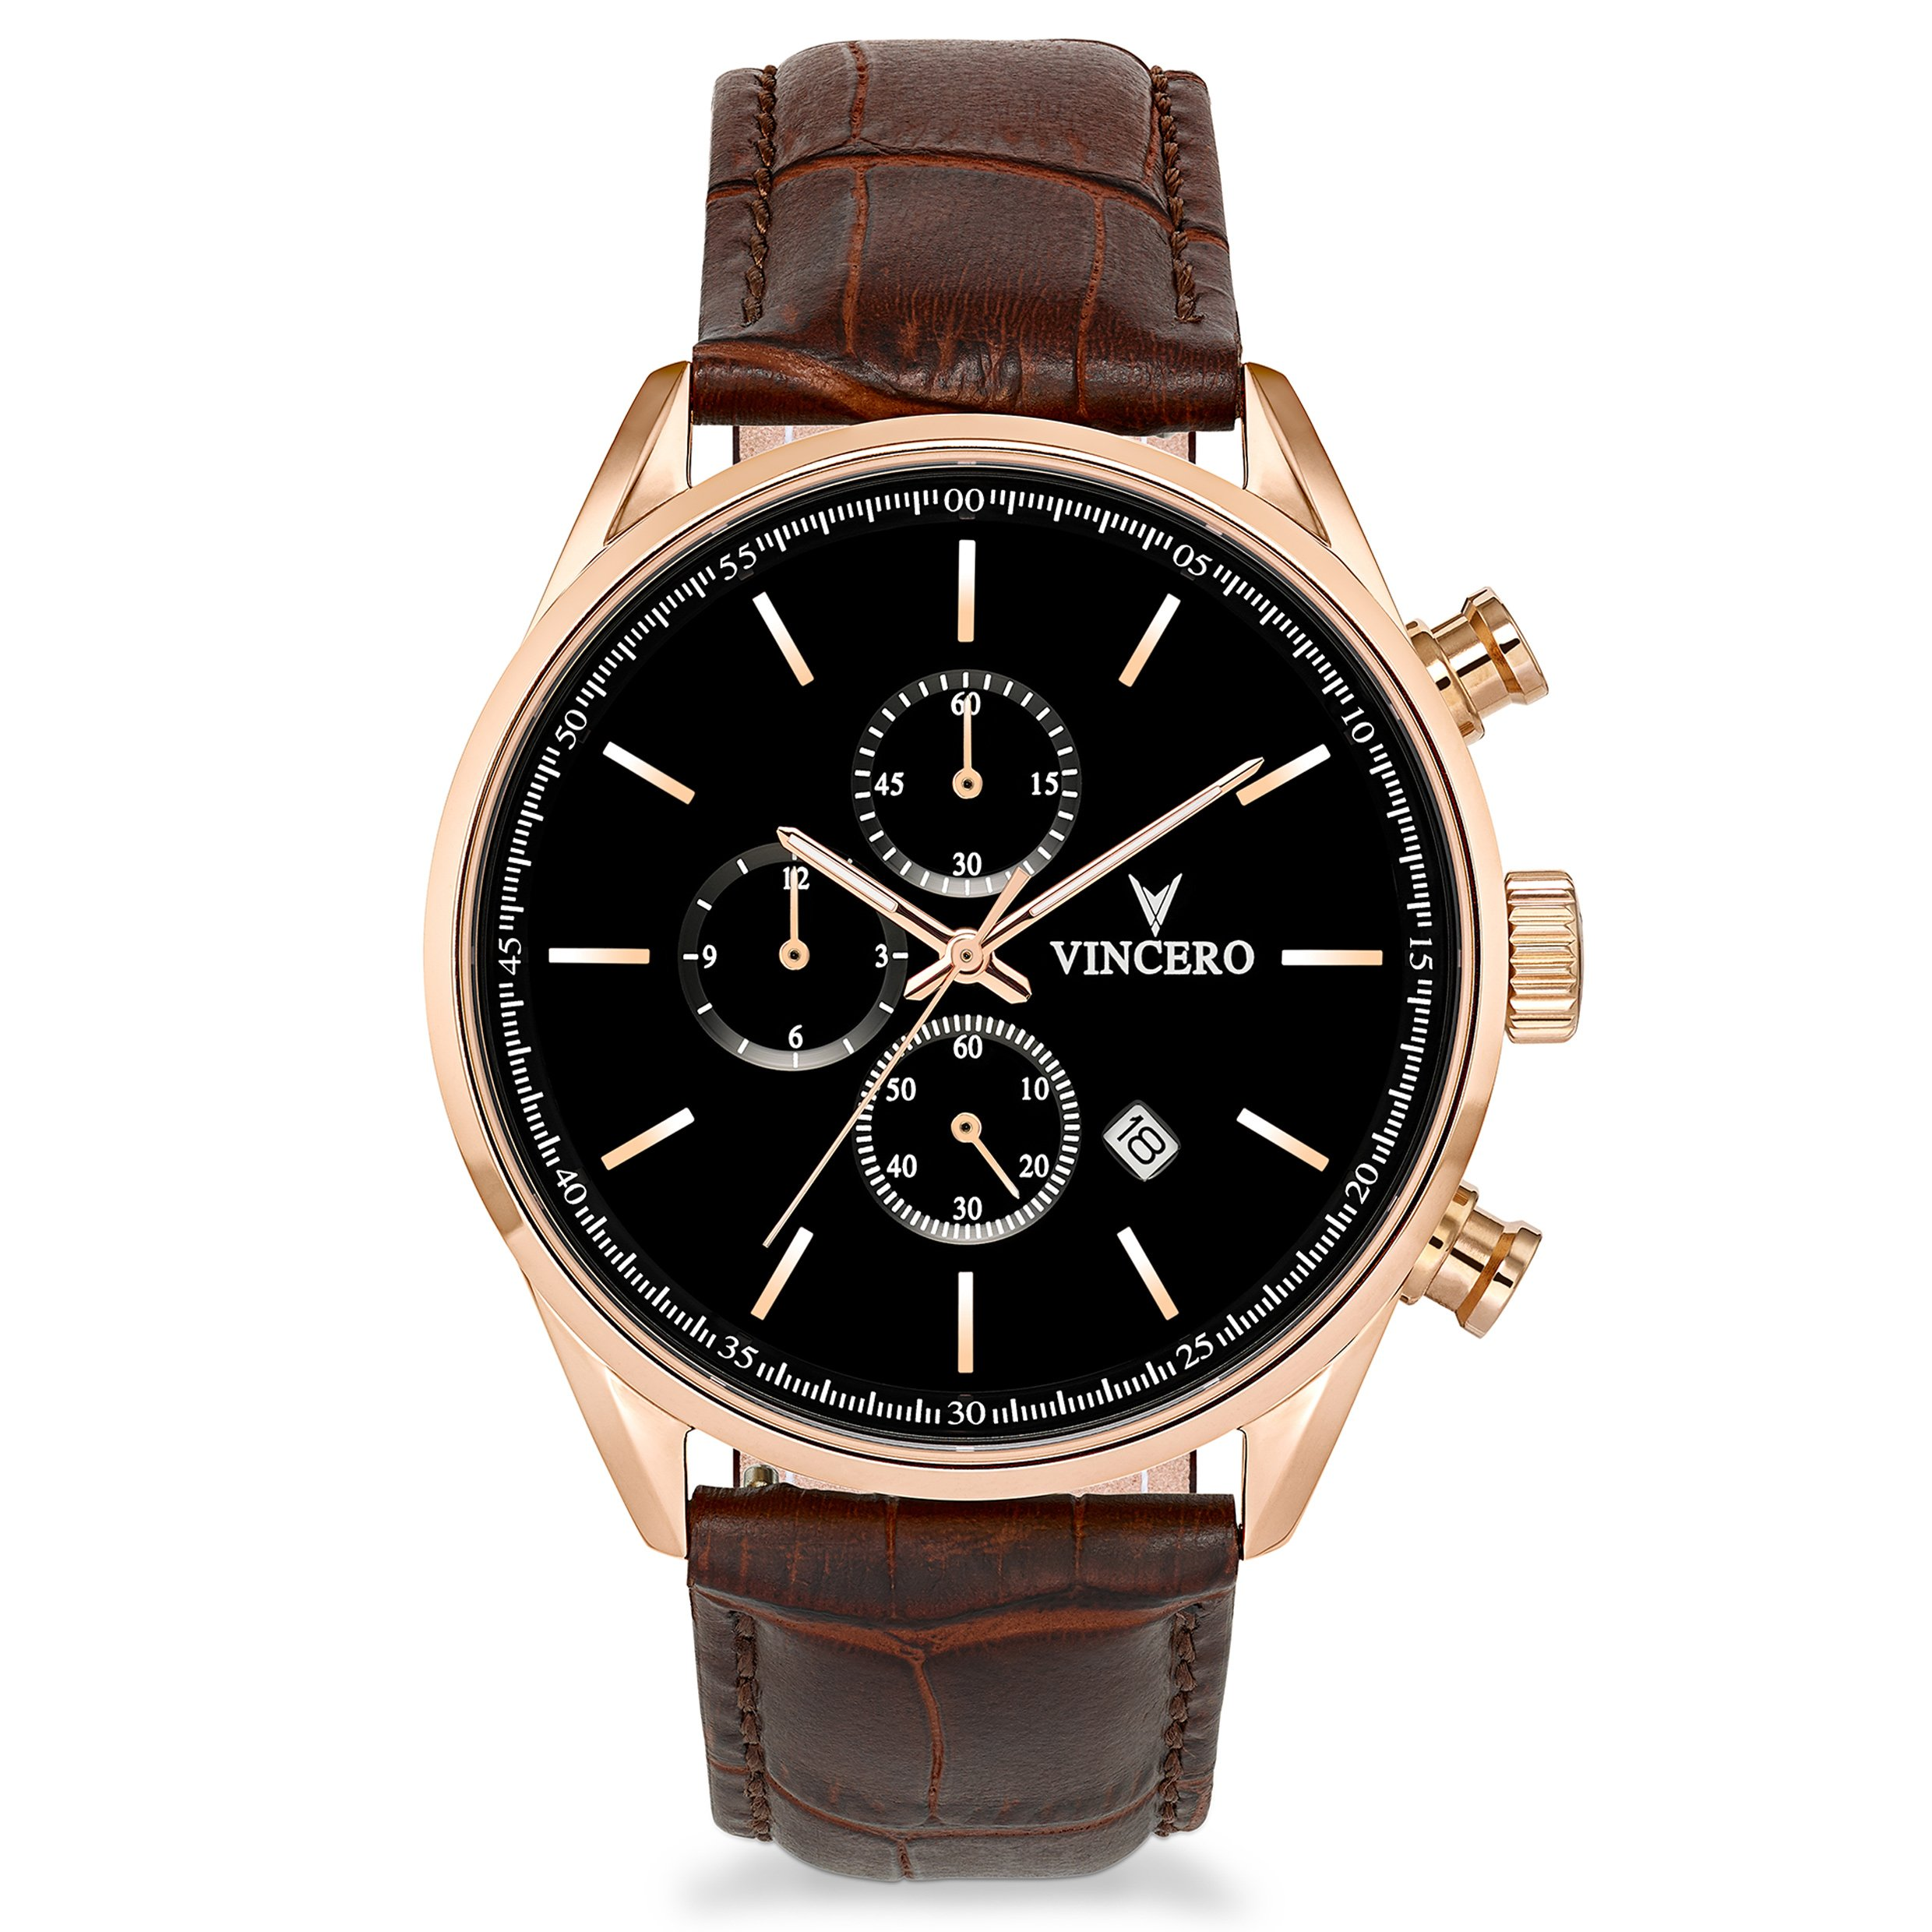 a watchshop on system ordering price quality fossil chronograph manly gents looks com stunning watches delivery that mens and nate lovely great watch